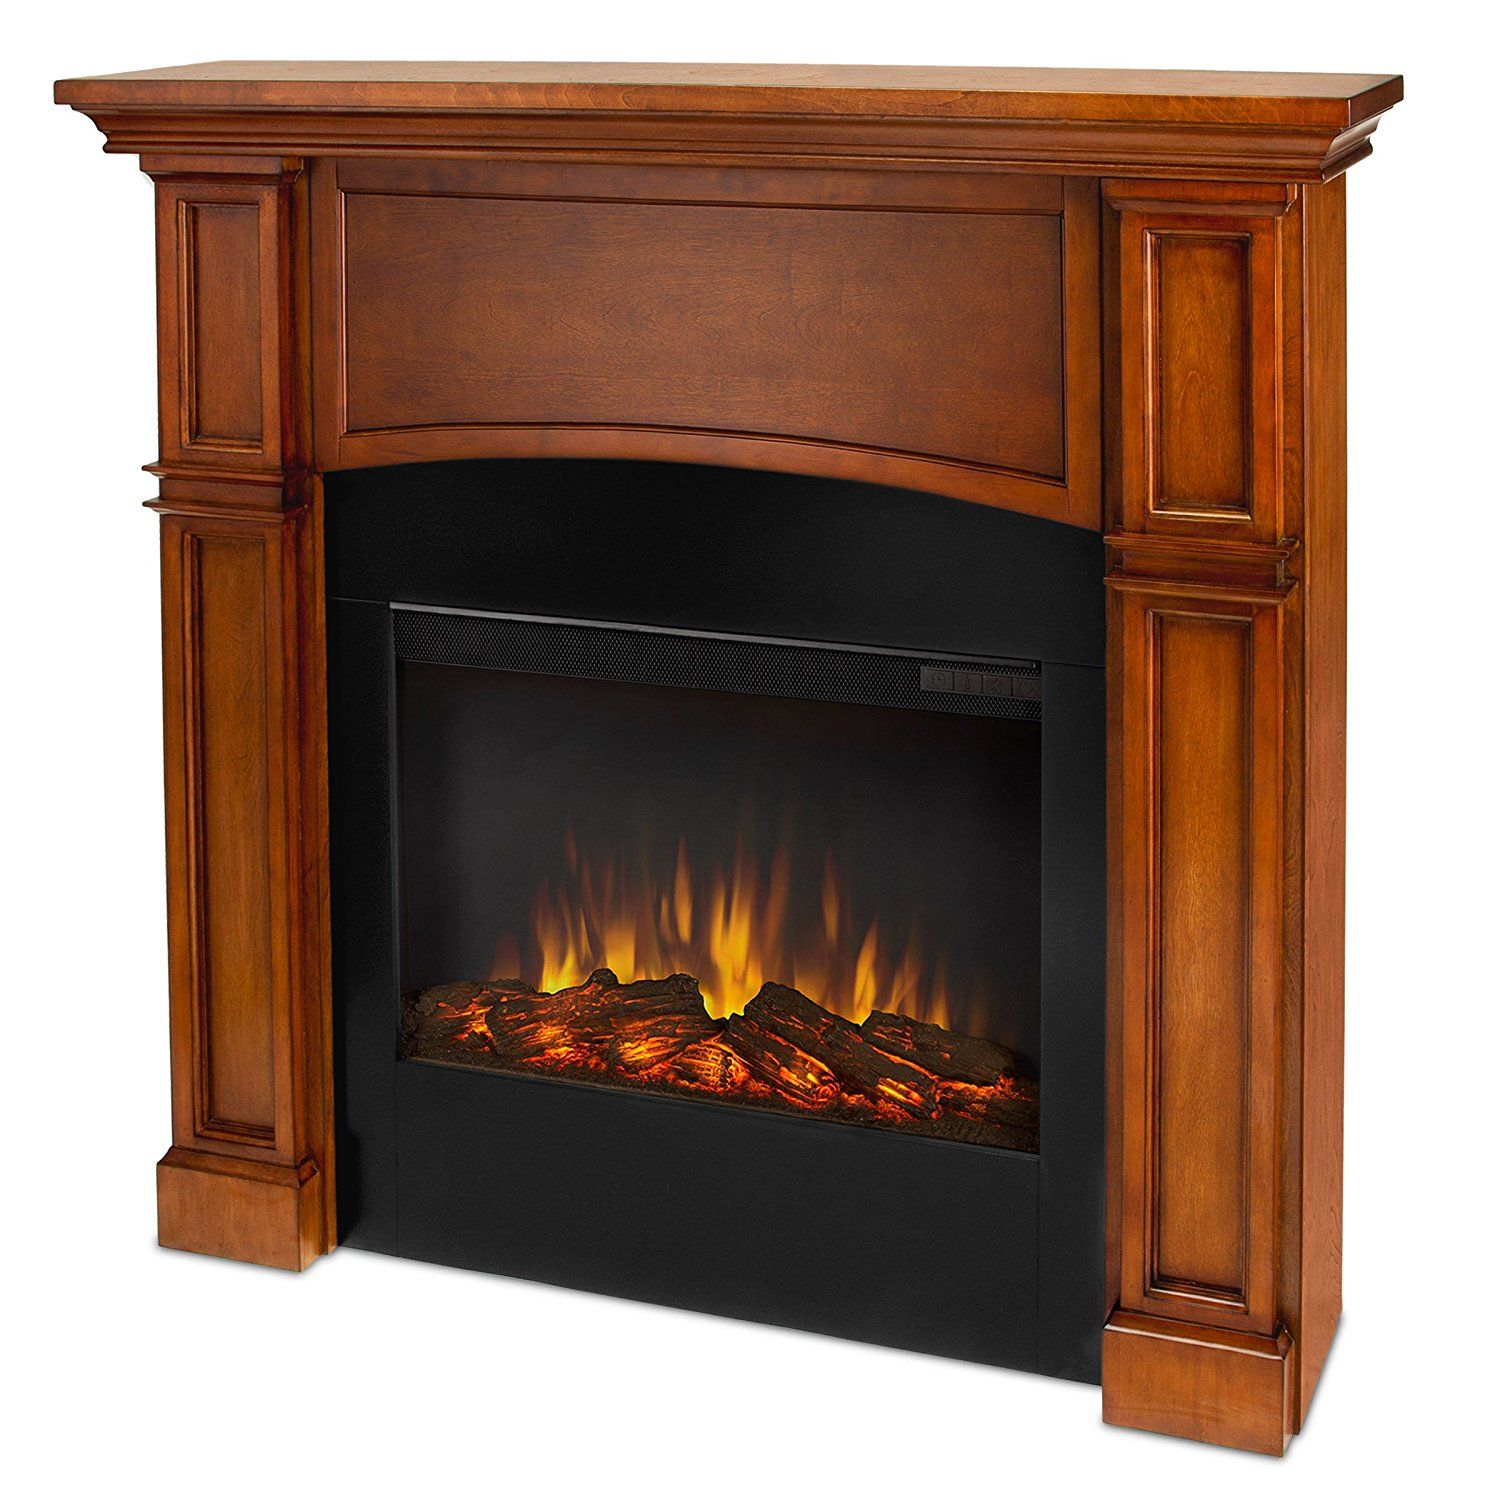 Real Flame Bradford 7600 X P Slim Line Electric Fireplace In Pecan Mantel Only Details Can Be Found By Clicking On The Image